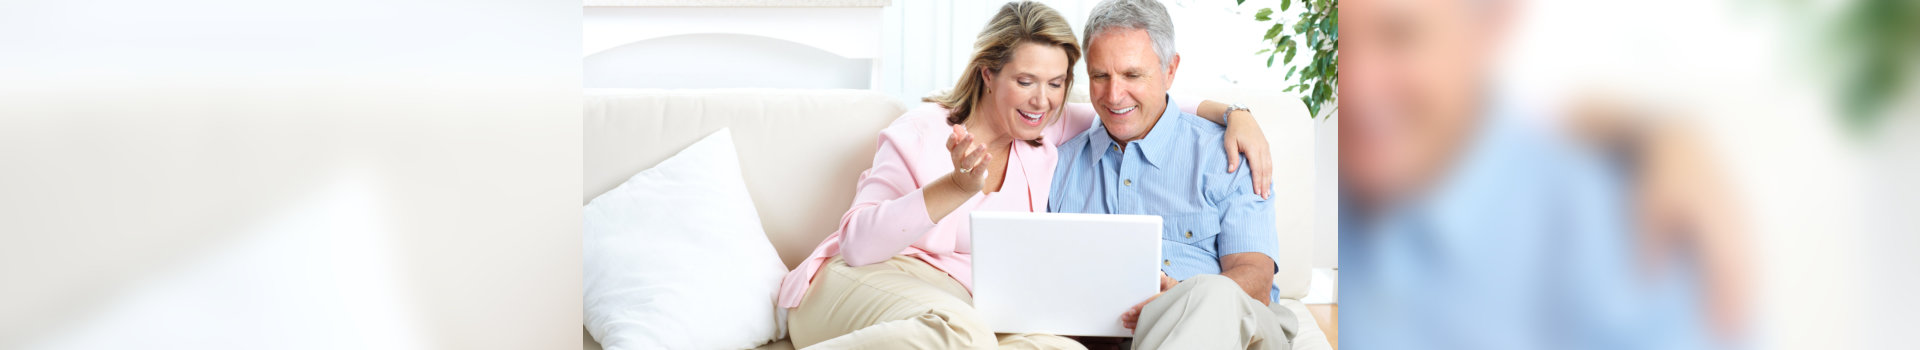 smiling old couple using laptop